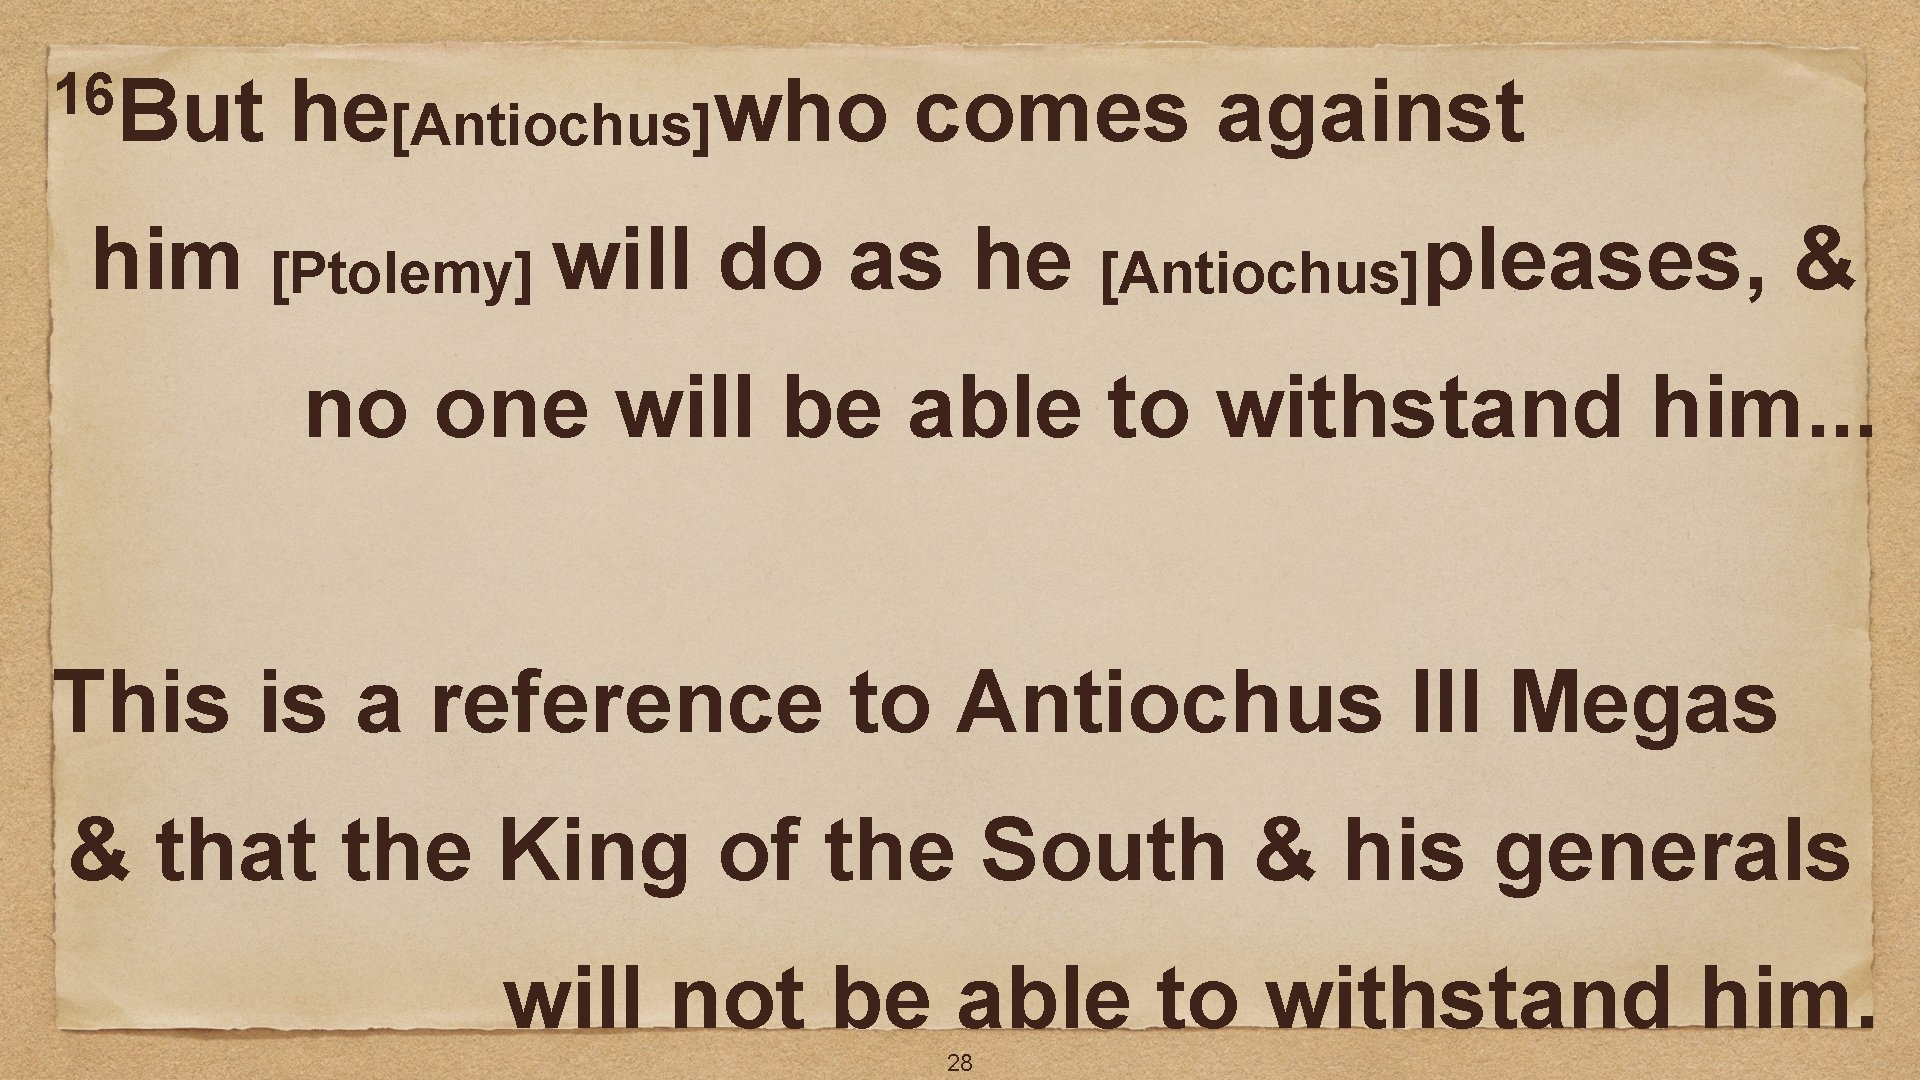 16 But he[Antiochus]who comes against him [Ptolemy] will do as he [Antiochus]pleases, & no